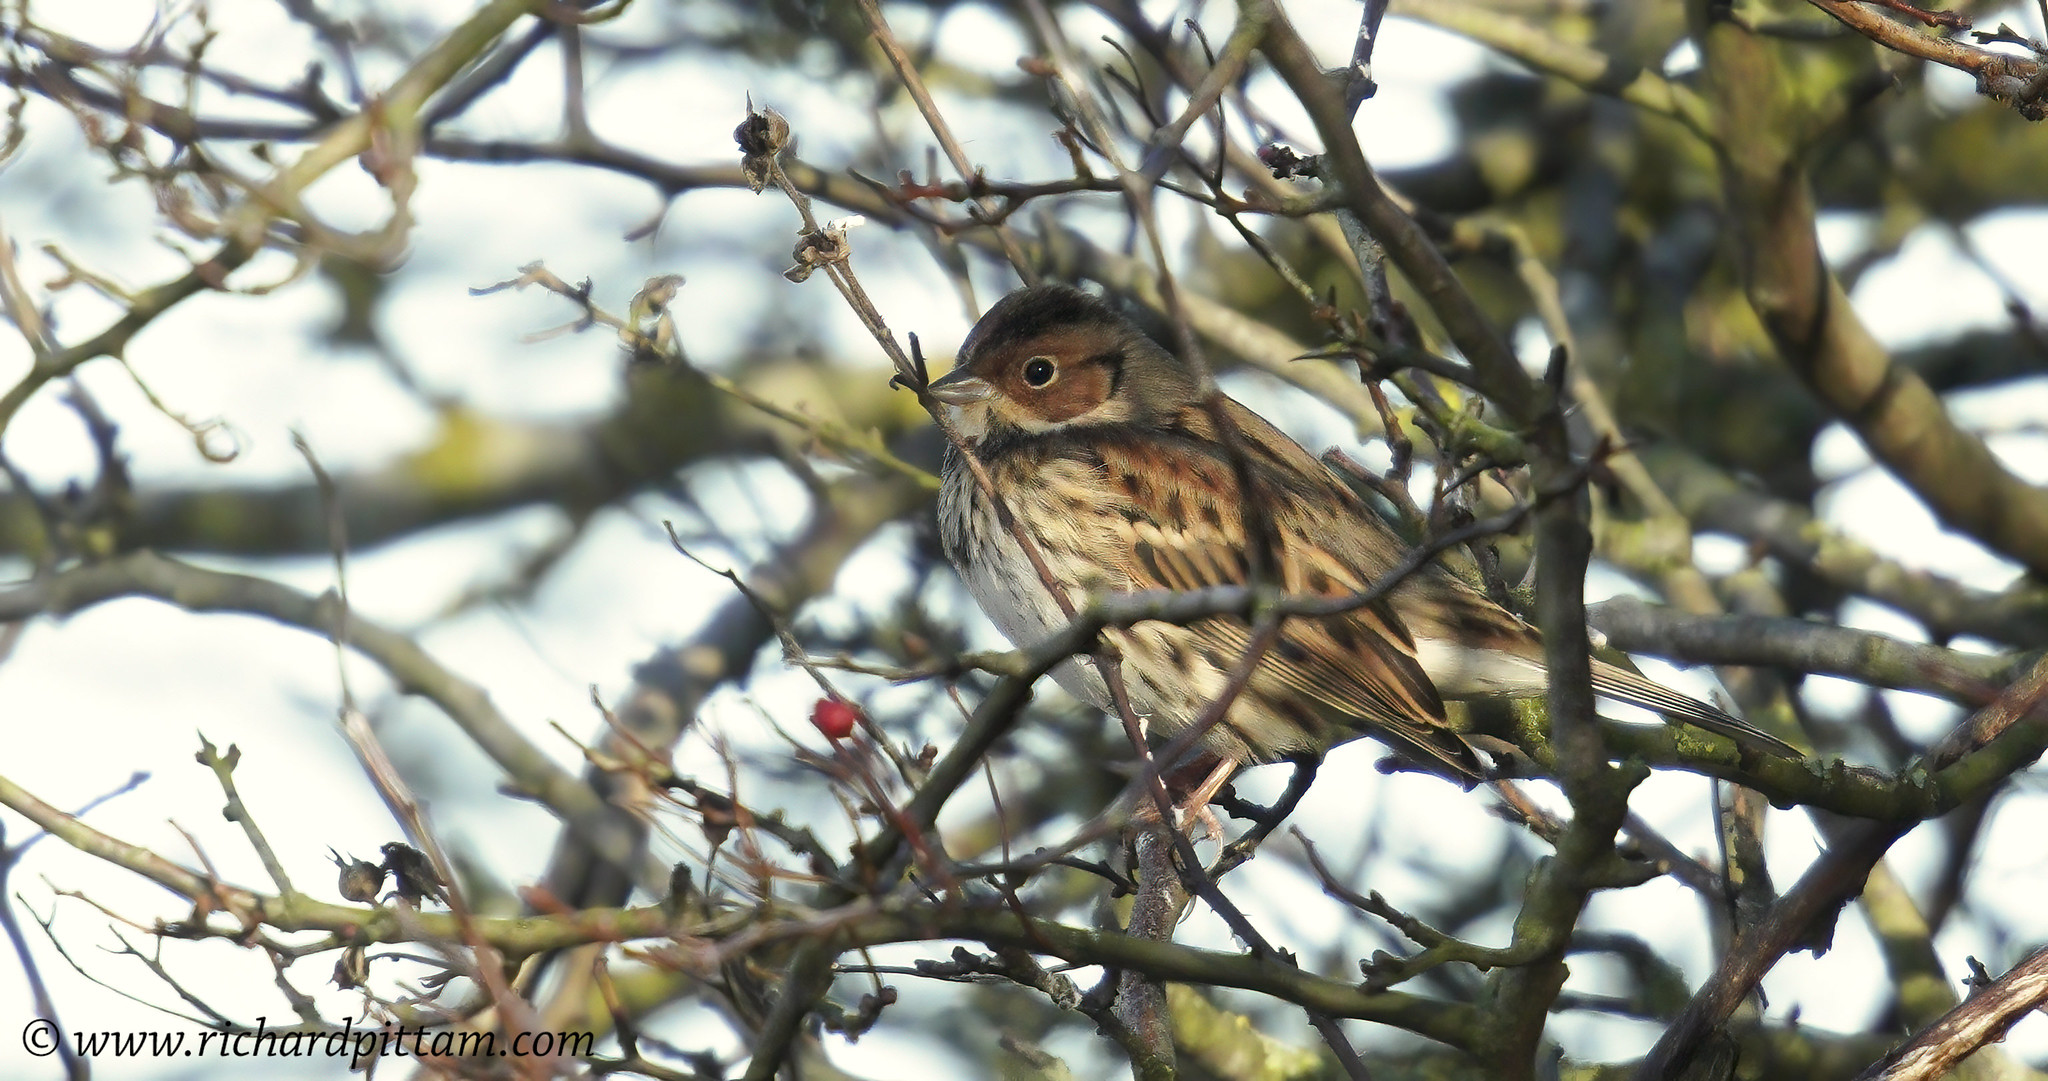 Little Bunting - this bird is a right pain in the **** to get a decent image of.